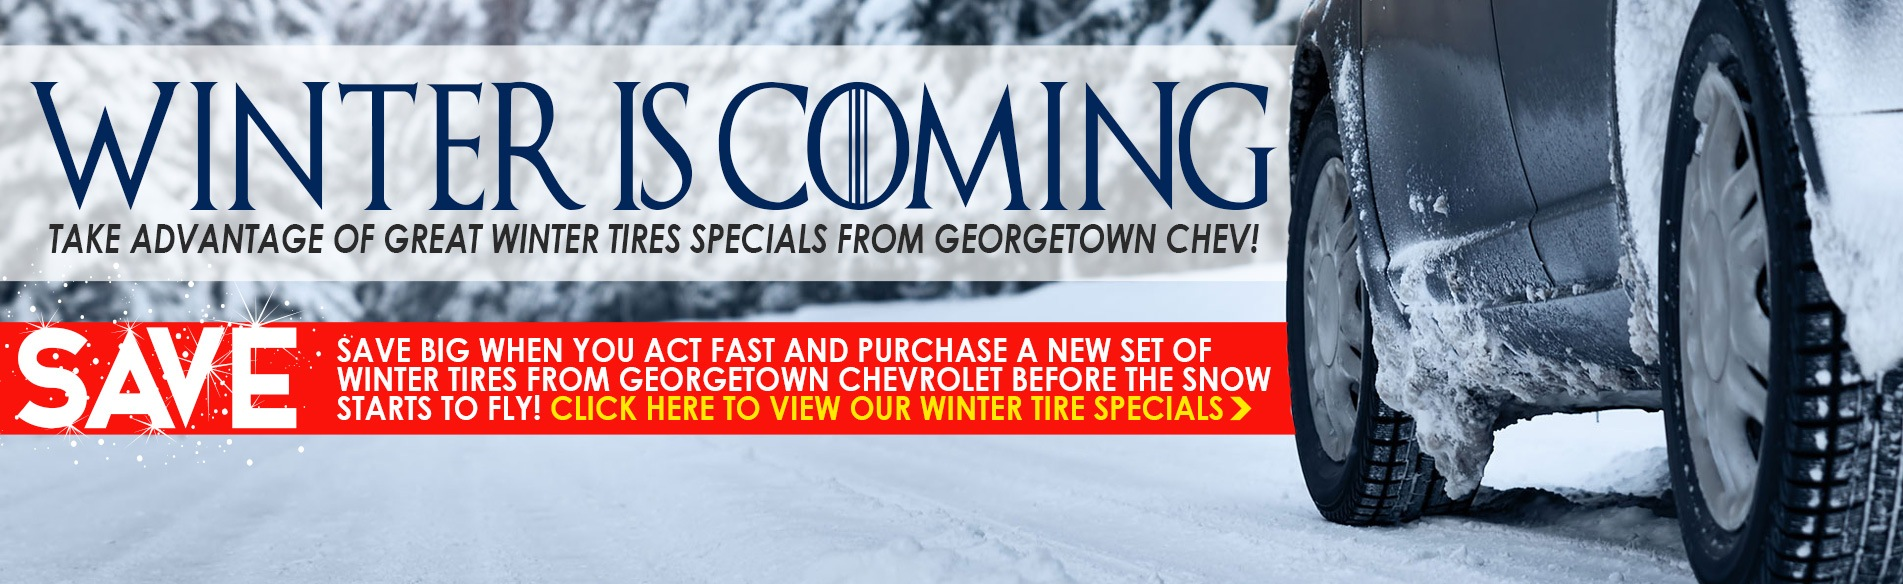 Great deals on Chevrolet, Buick, GMC Winter Tires in Georgetown Ontario from Georgetown Chevrolet